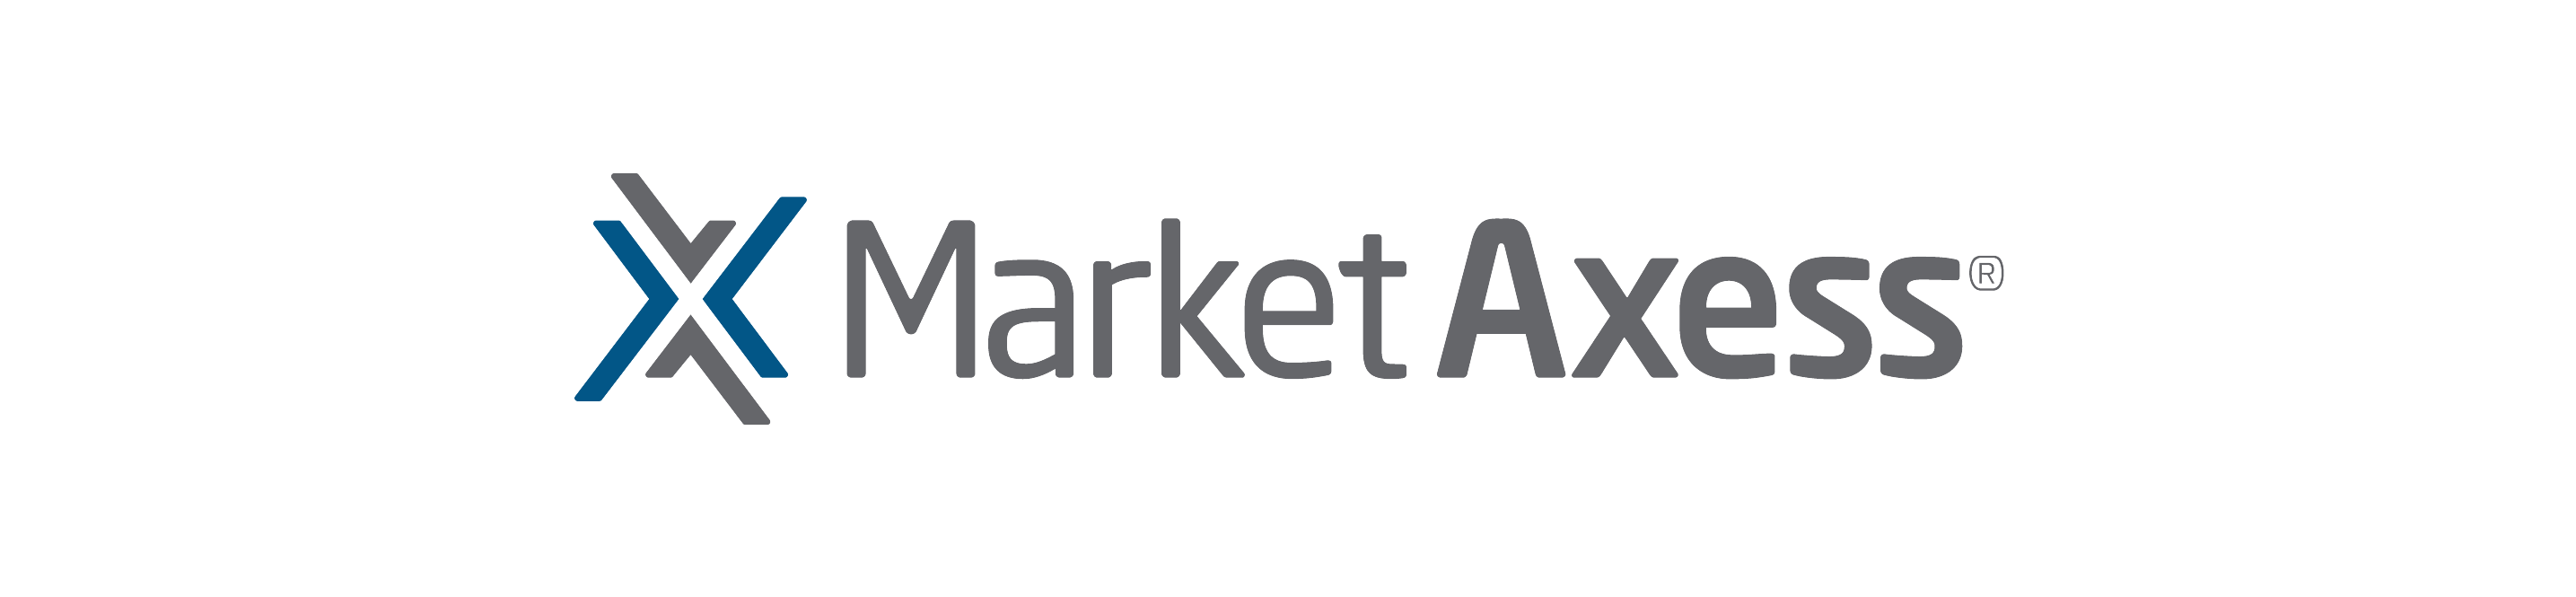 MarketAxess Launches Centralised Fixed Income Trading Marketplace With Integrated U.S. Treasury Market Liquidity